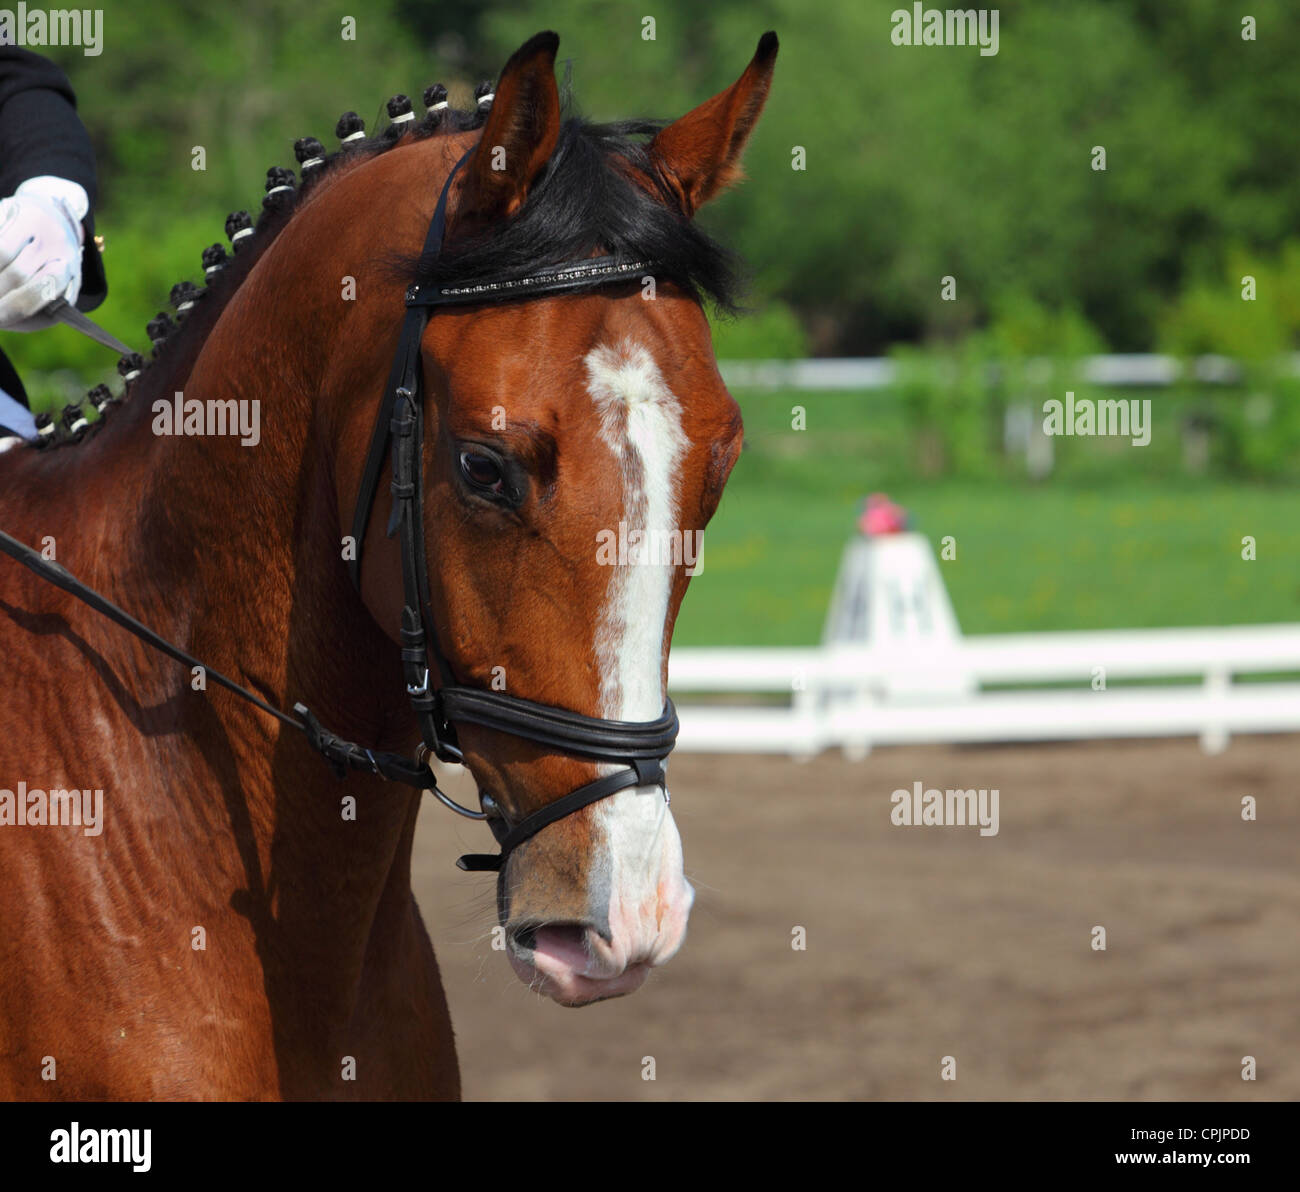 A close-up portrait of beautiful dressage horse during the dressage test Stock Photo